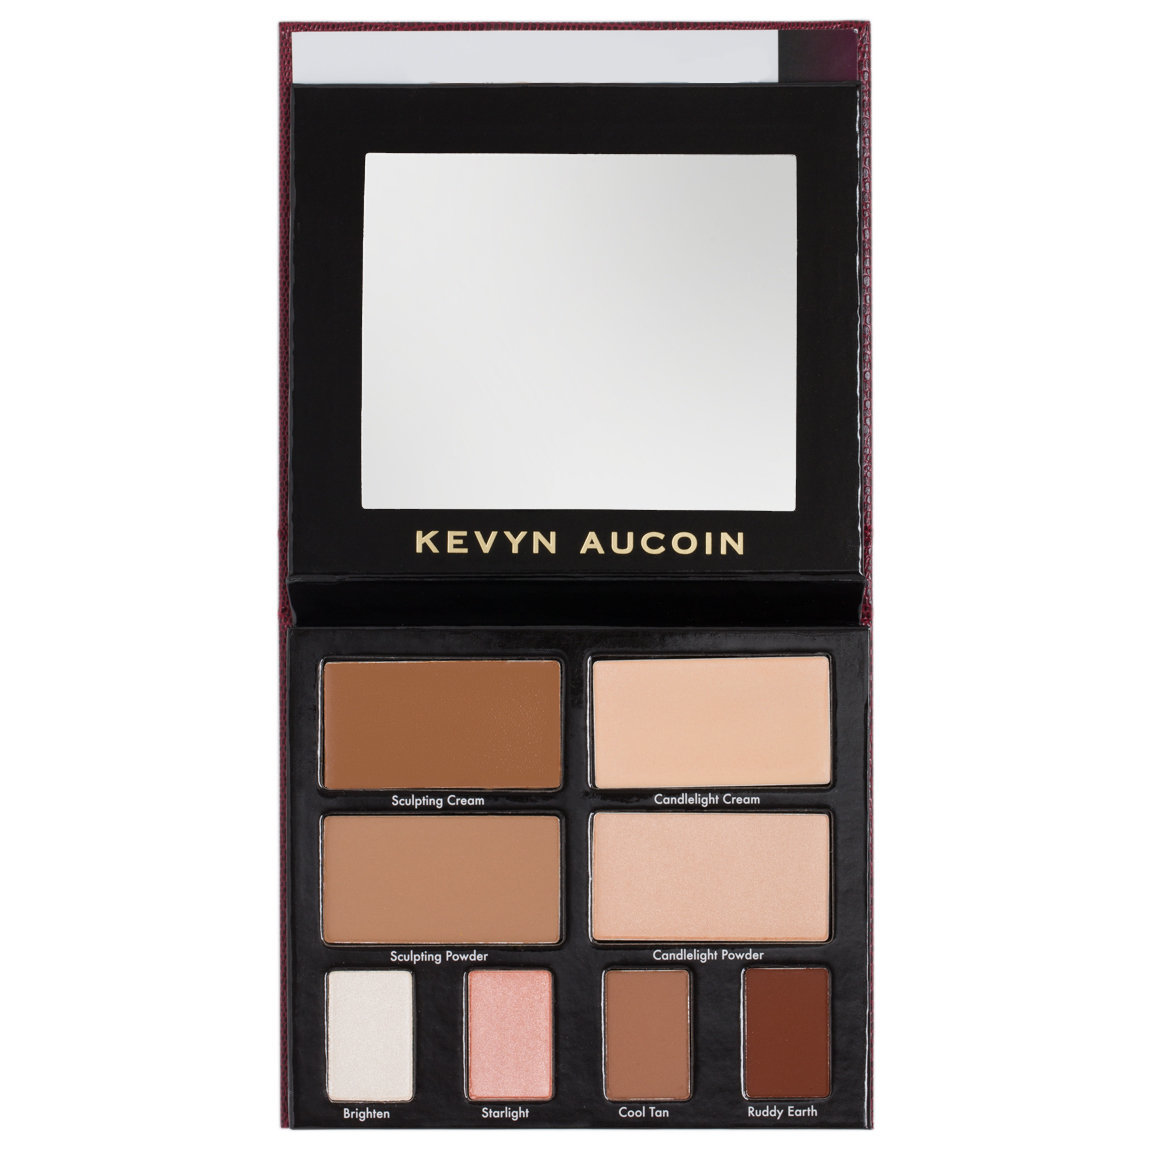 Kevyn Aucoin The Contour Book: The Art of Sculpting & Defining Vol. 2 product swatch.